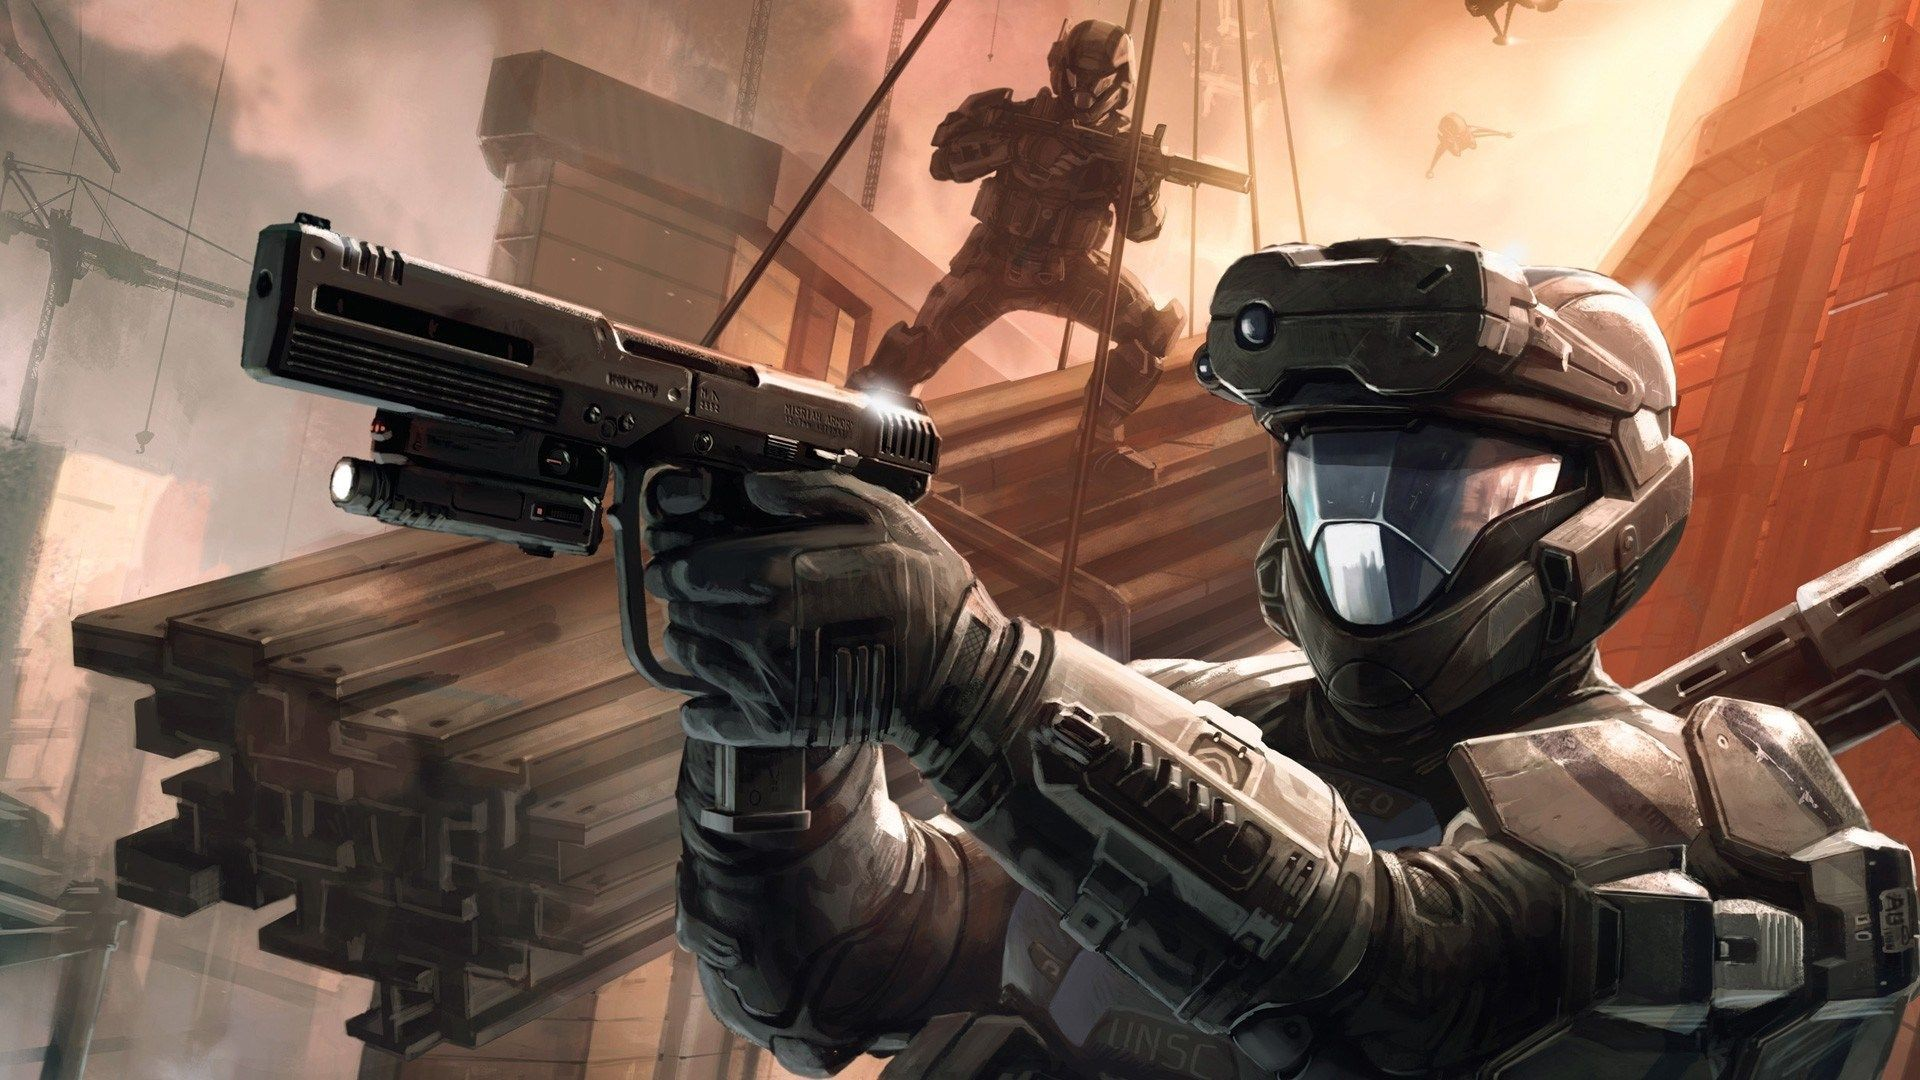 19201080 Halo 3 Odst Game Wallpaper 4k In 2020 Halo Armor Halo Game Halo 3